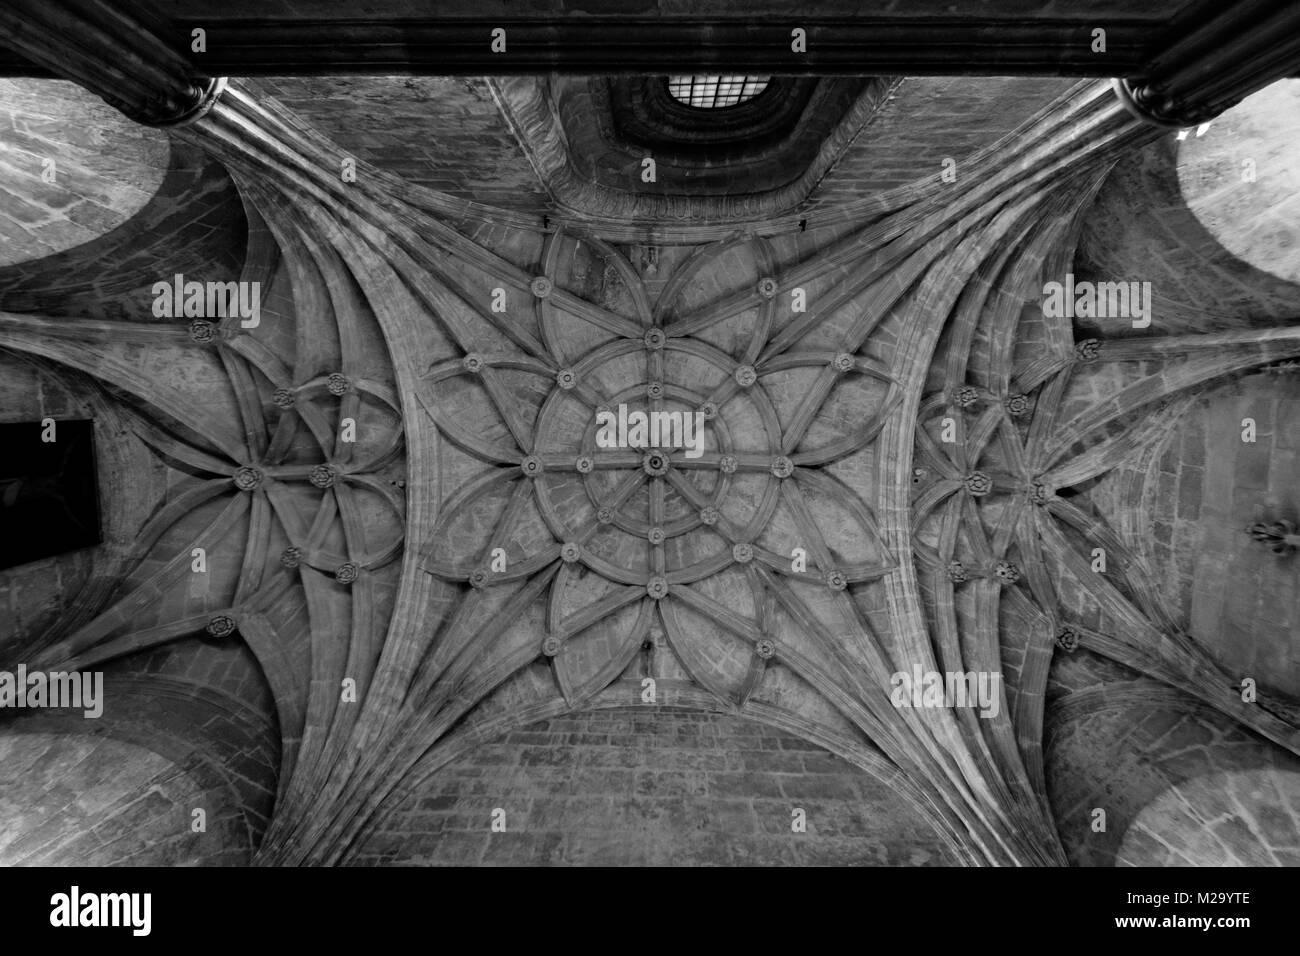 a view of the roof architecture in a church in Seville, Spain black and white - Stock Image